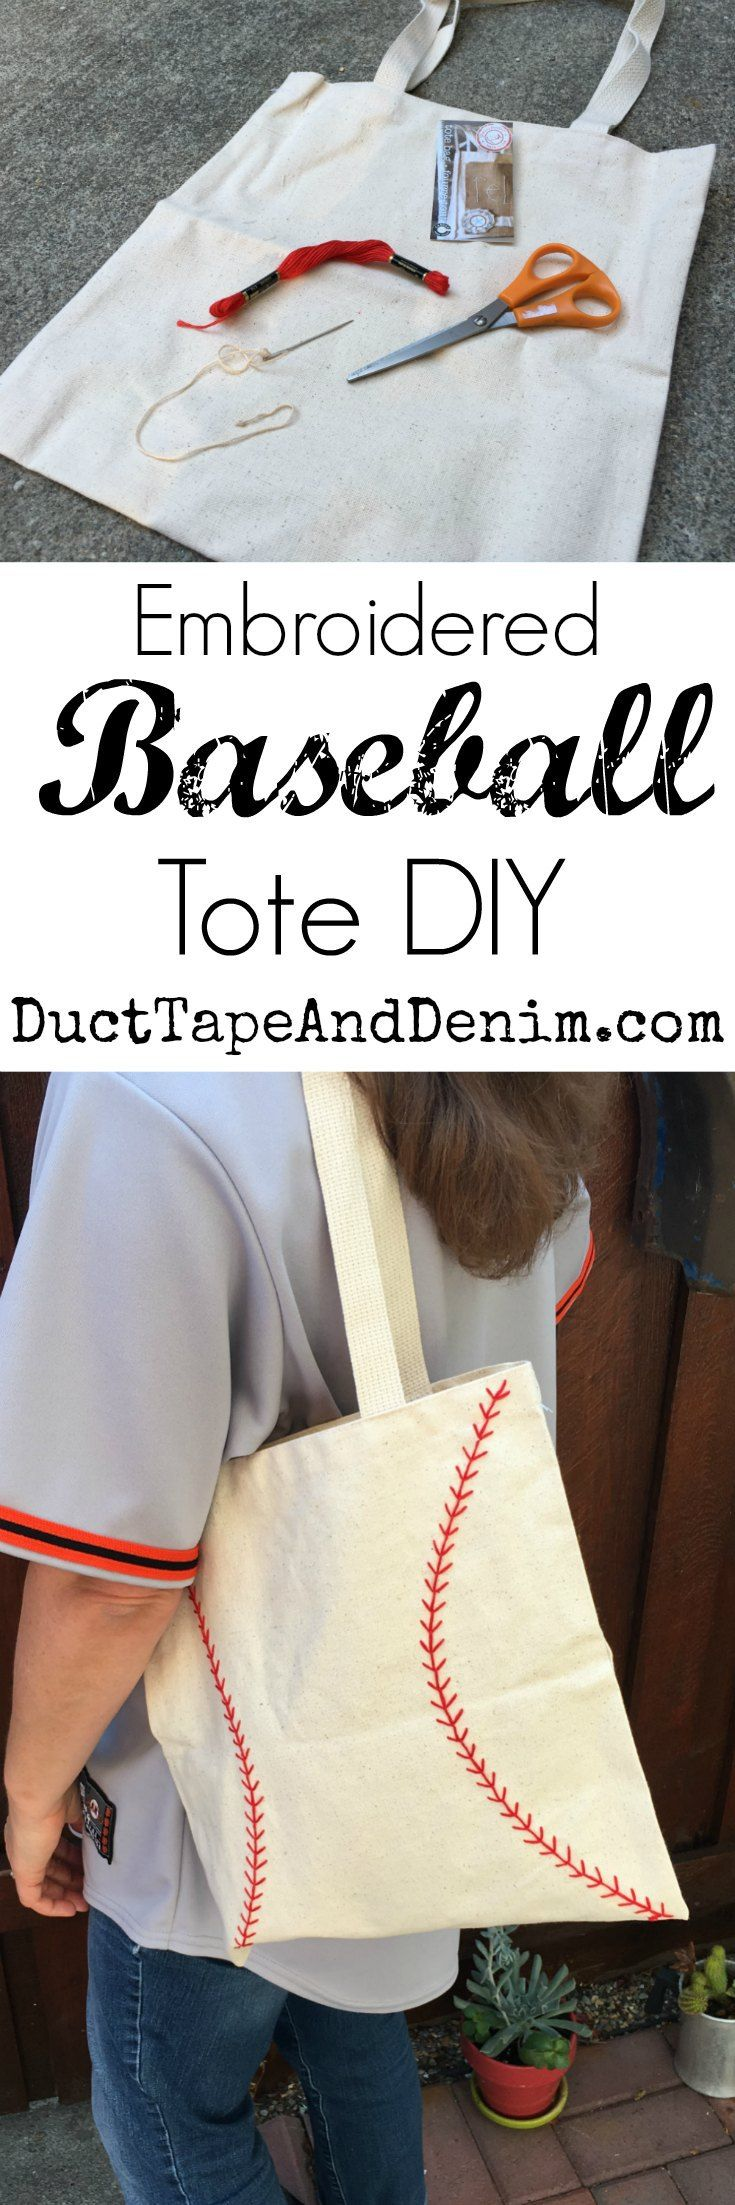 Embroidered baseball bag DIY, tote bag tutorial on DuctTapeAndDenim.com #ad #ProtectYourEverything